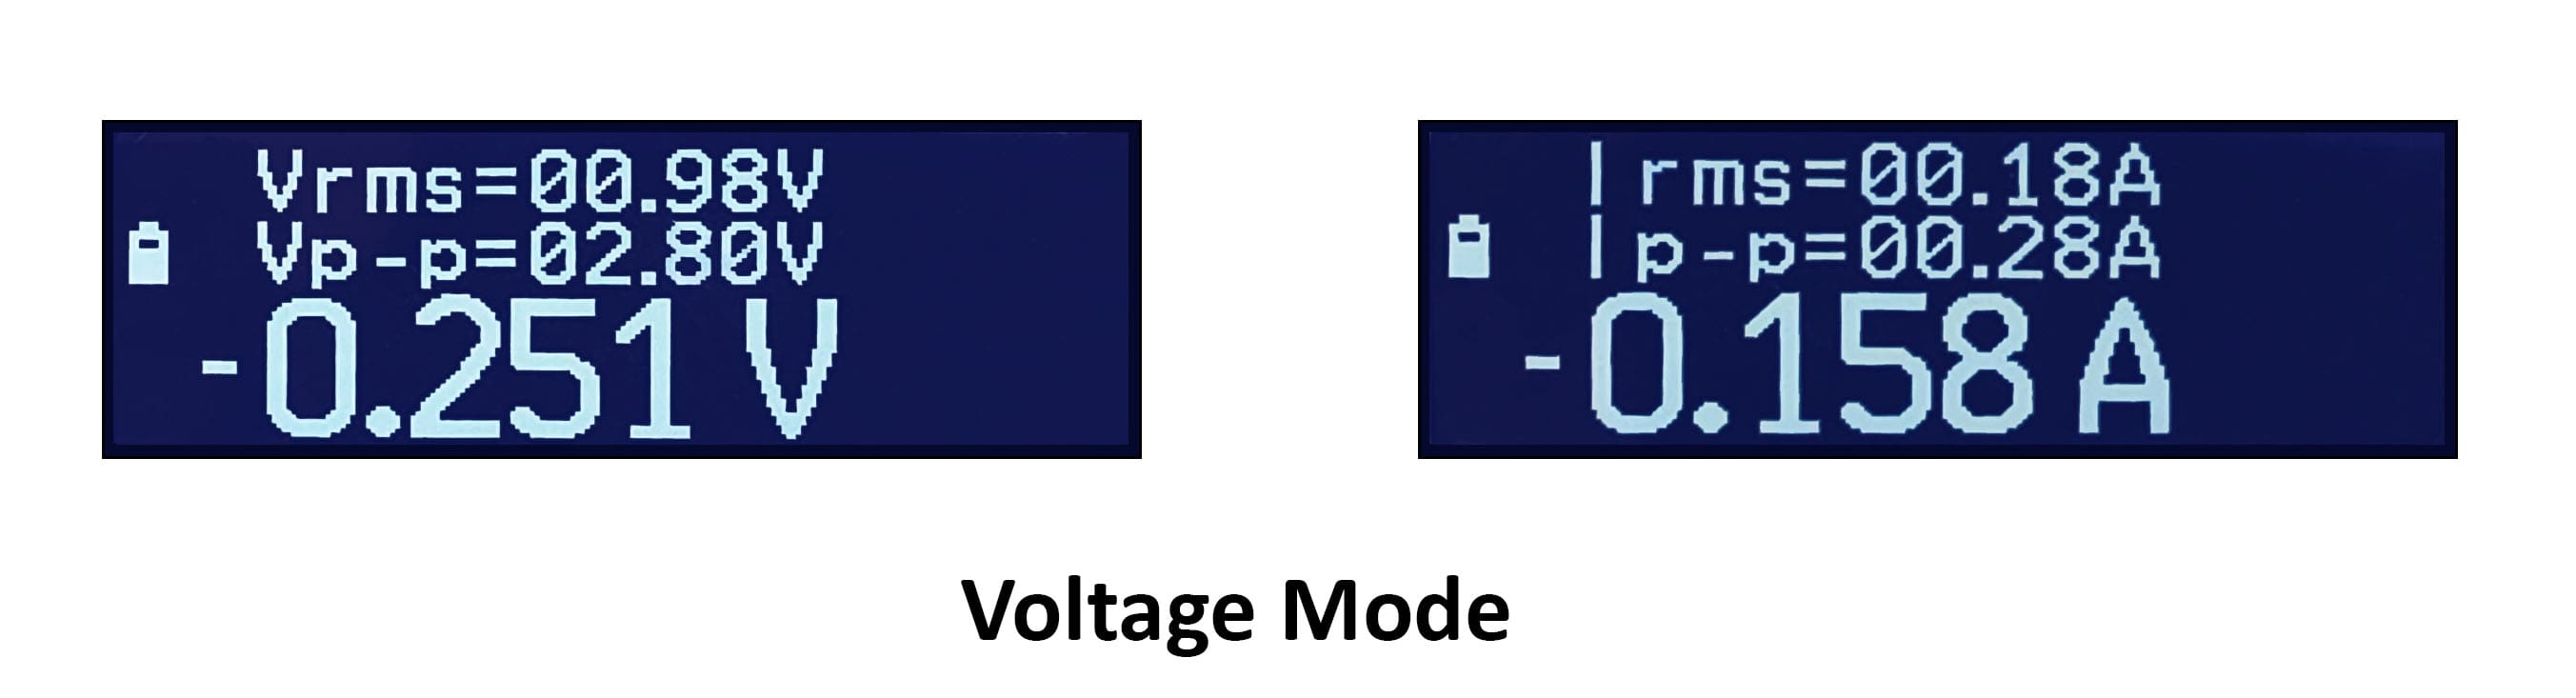 LCR-Reader-MPA voltage testing